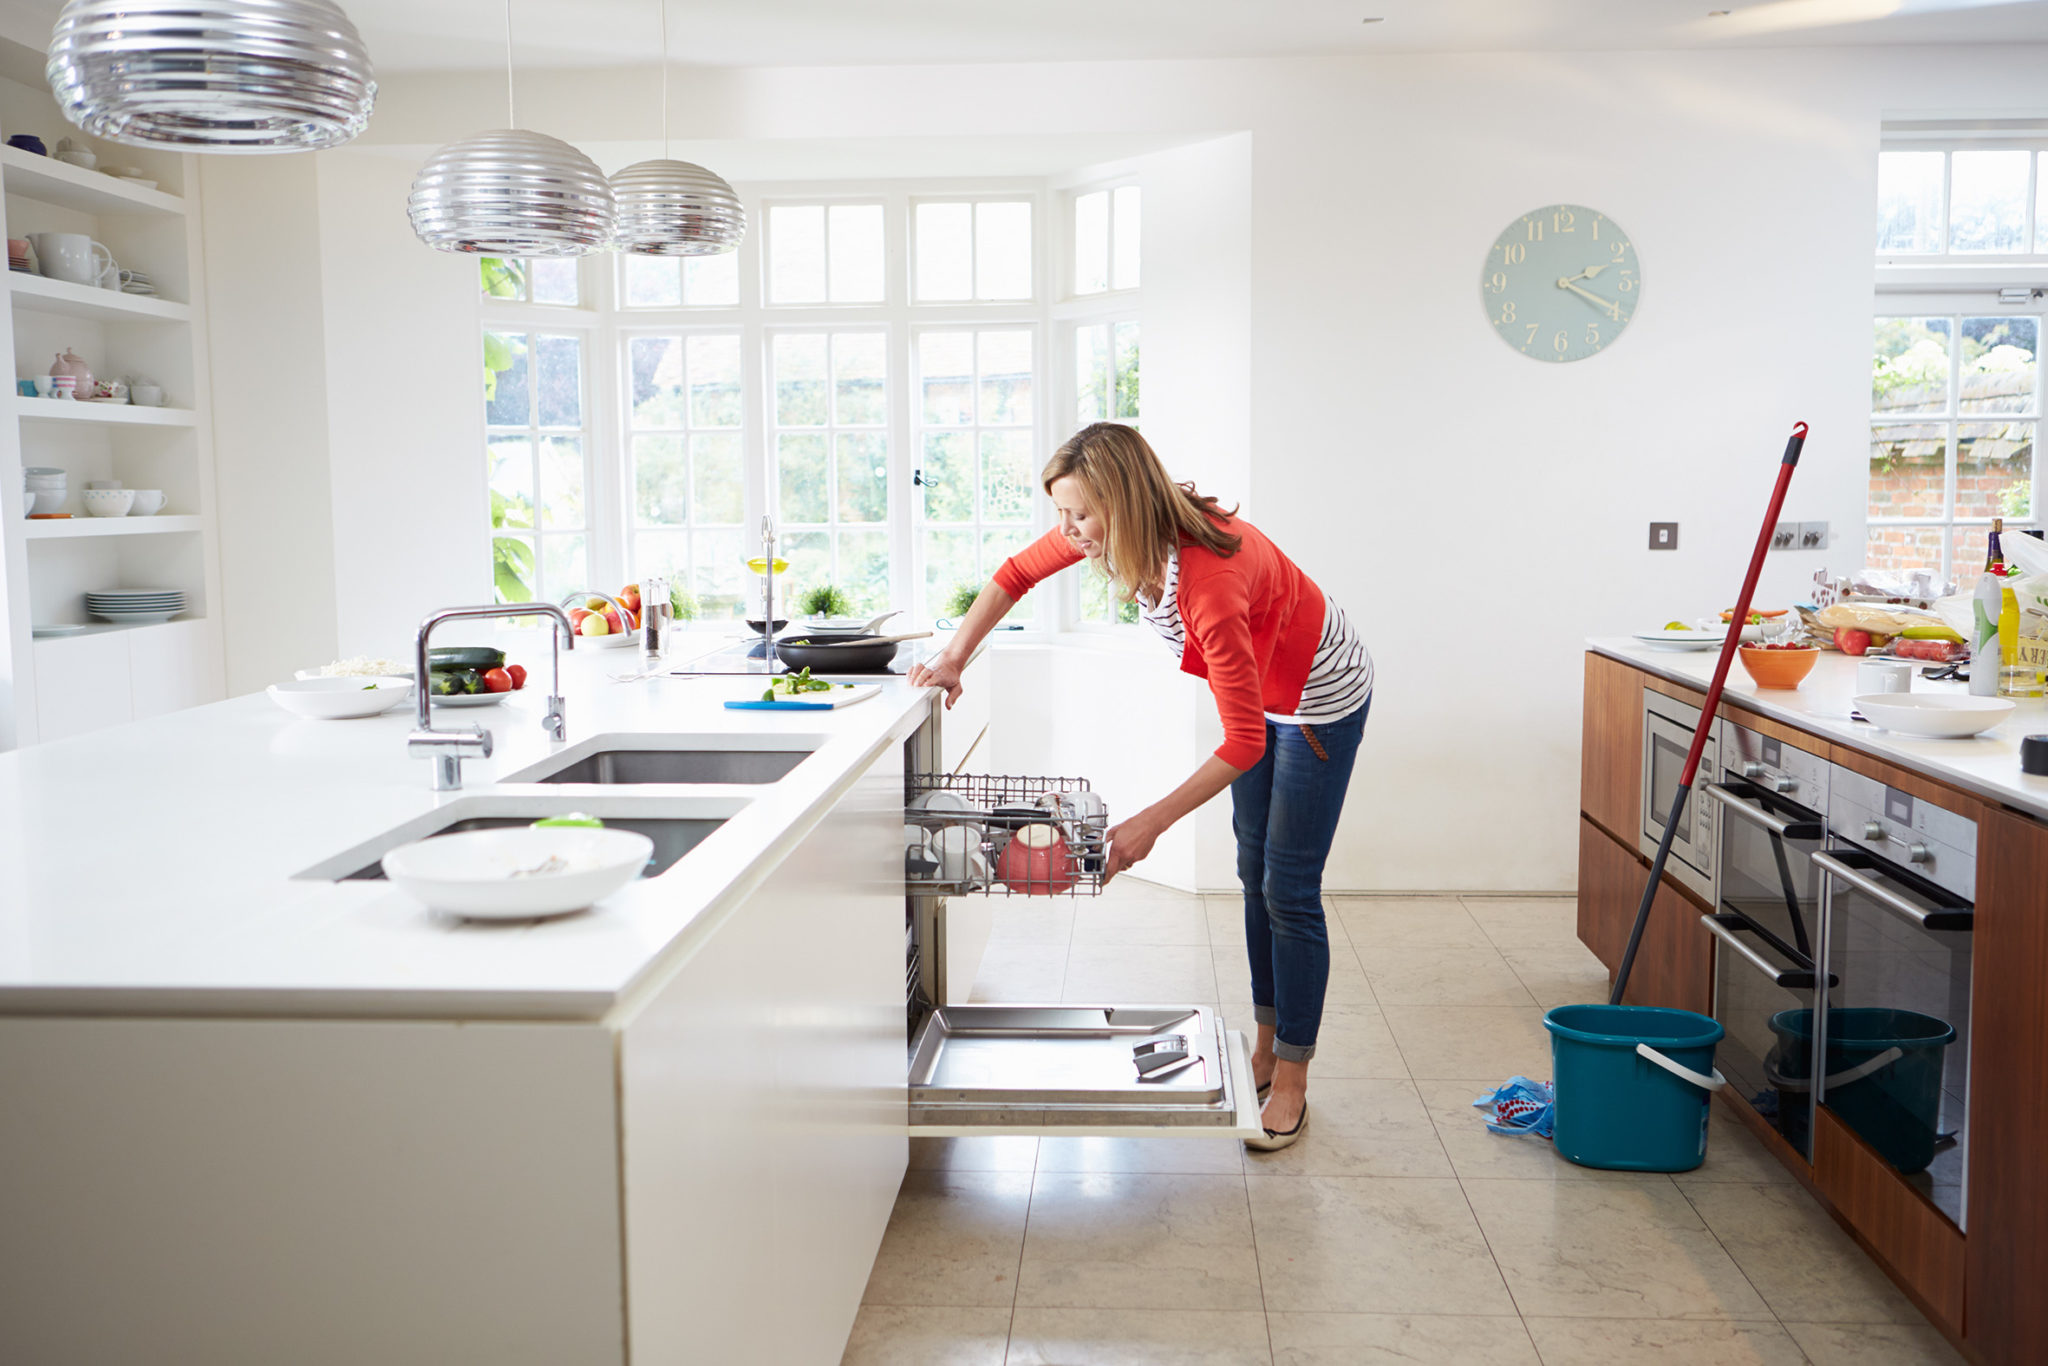 Is Your Dishwasher Impacting Your Indoor Air Quality?